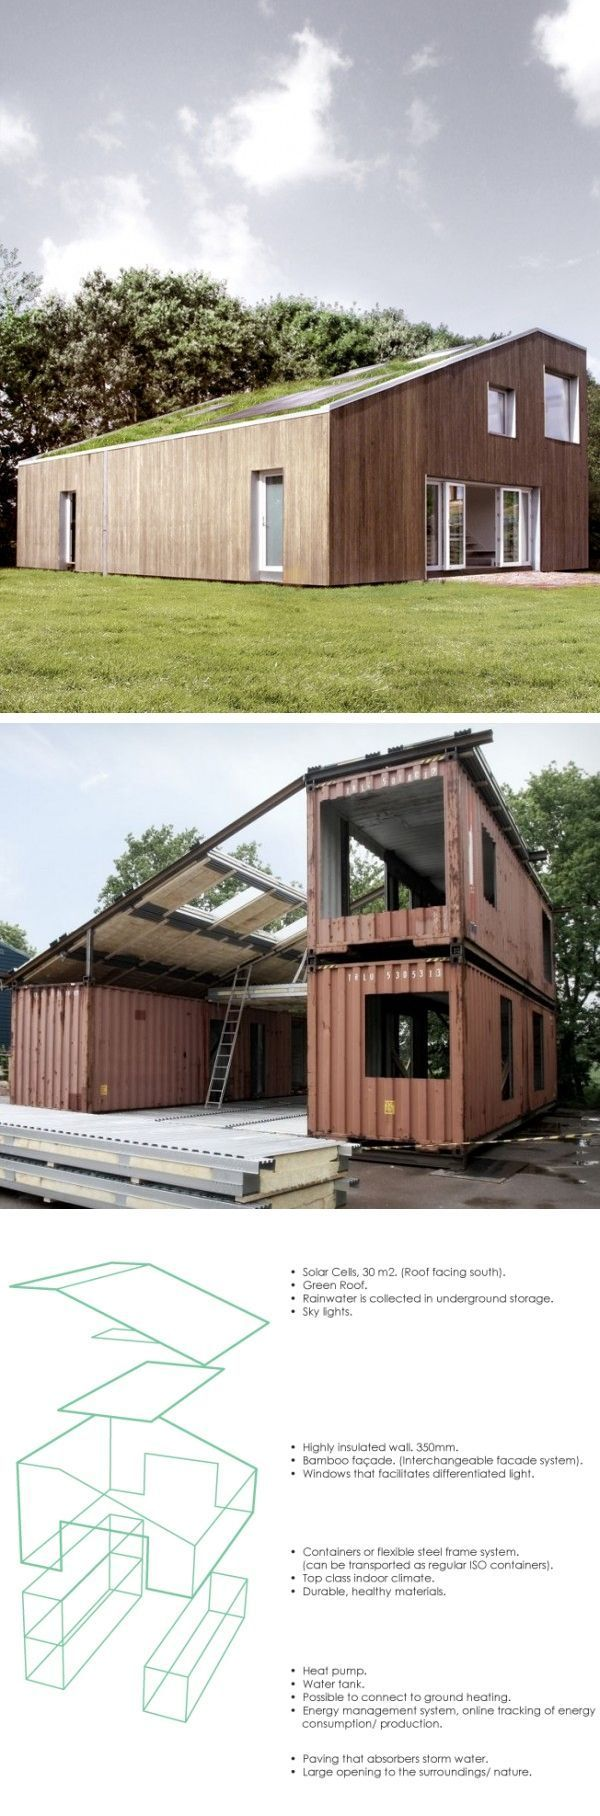 Best 22 Modern Shipping Container Homes for Every Budget https://fancydecors.co/2017/12/31/22-modern-shipping-container-homes-every-budget/ After the container is warm, the atmosphere within the container may get humid.